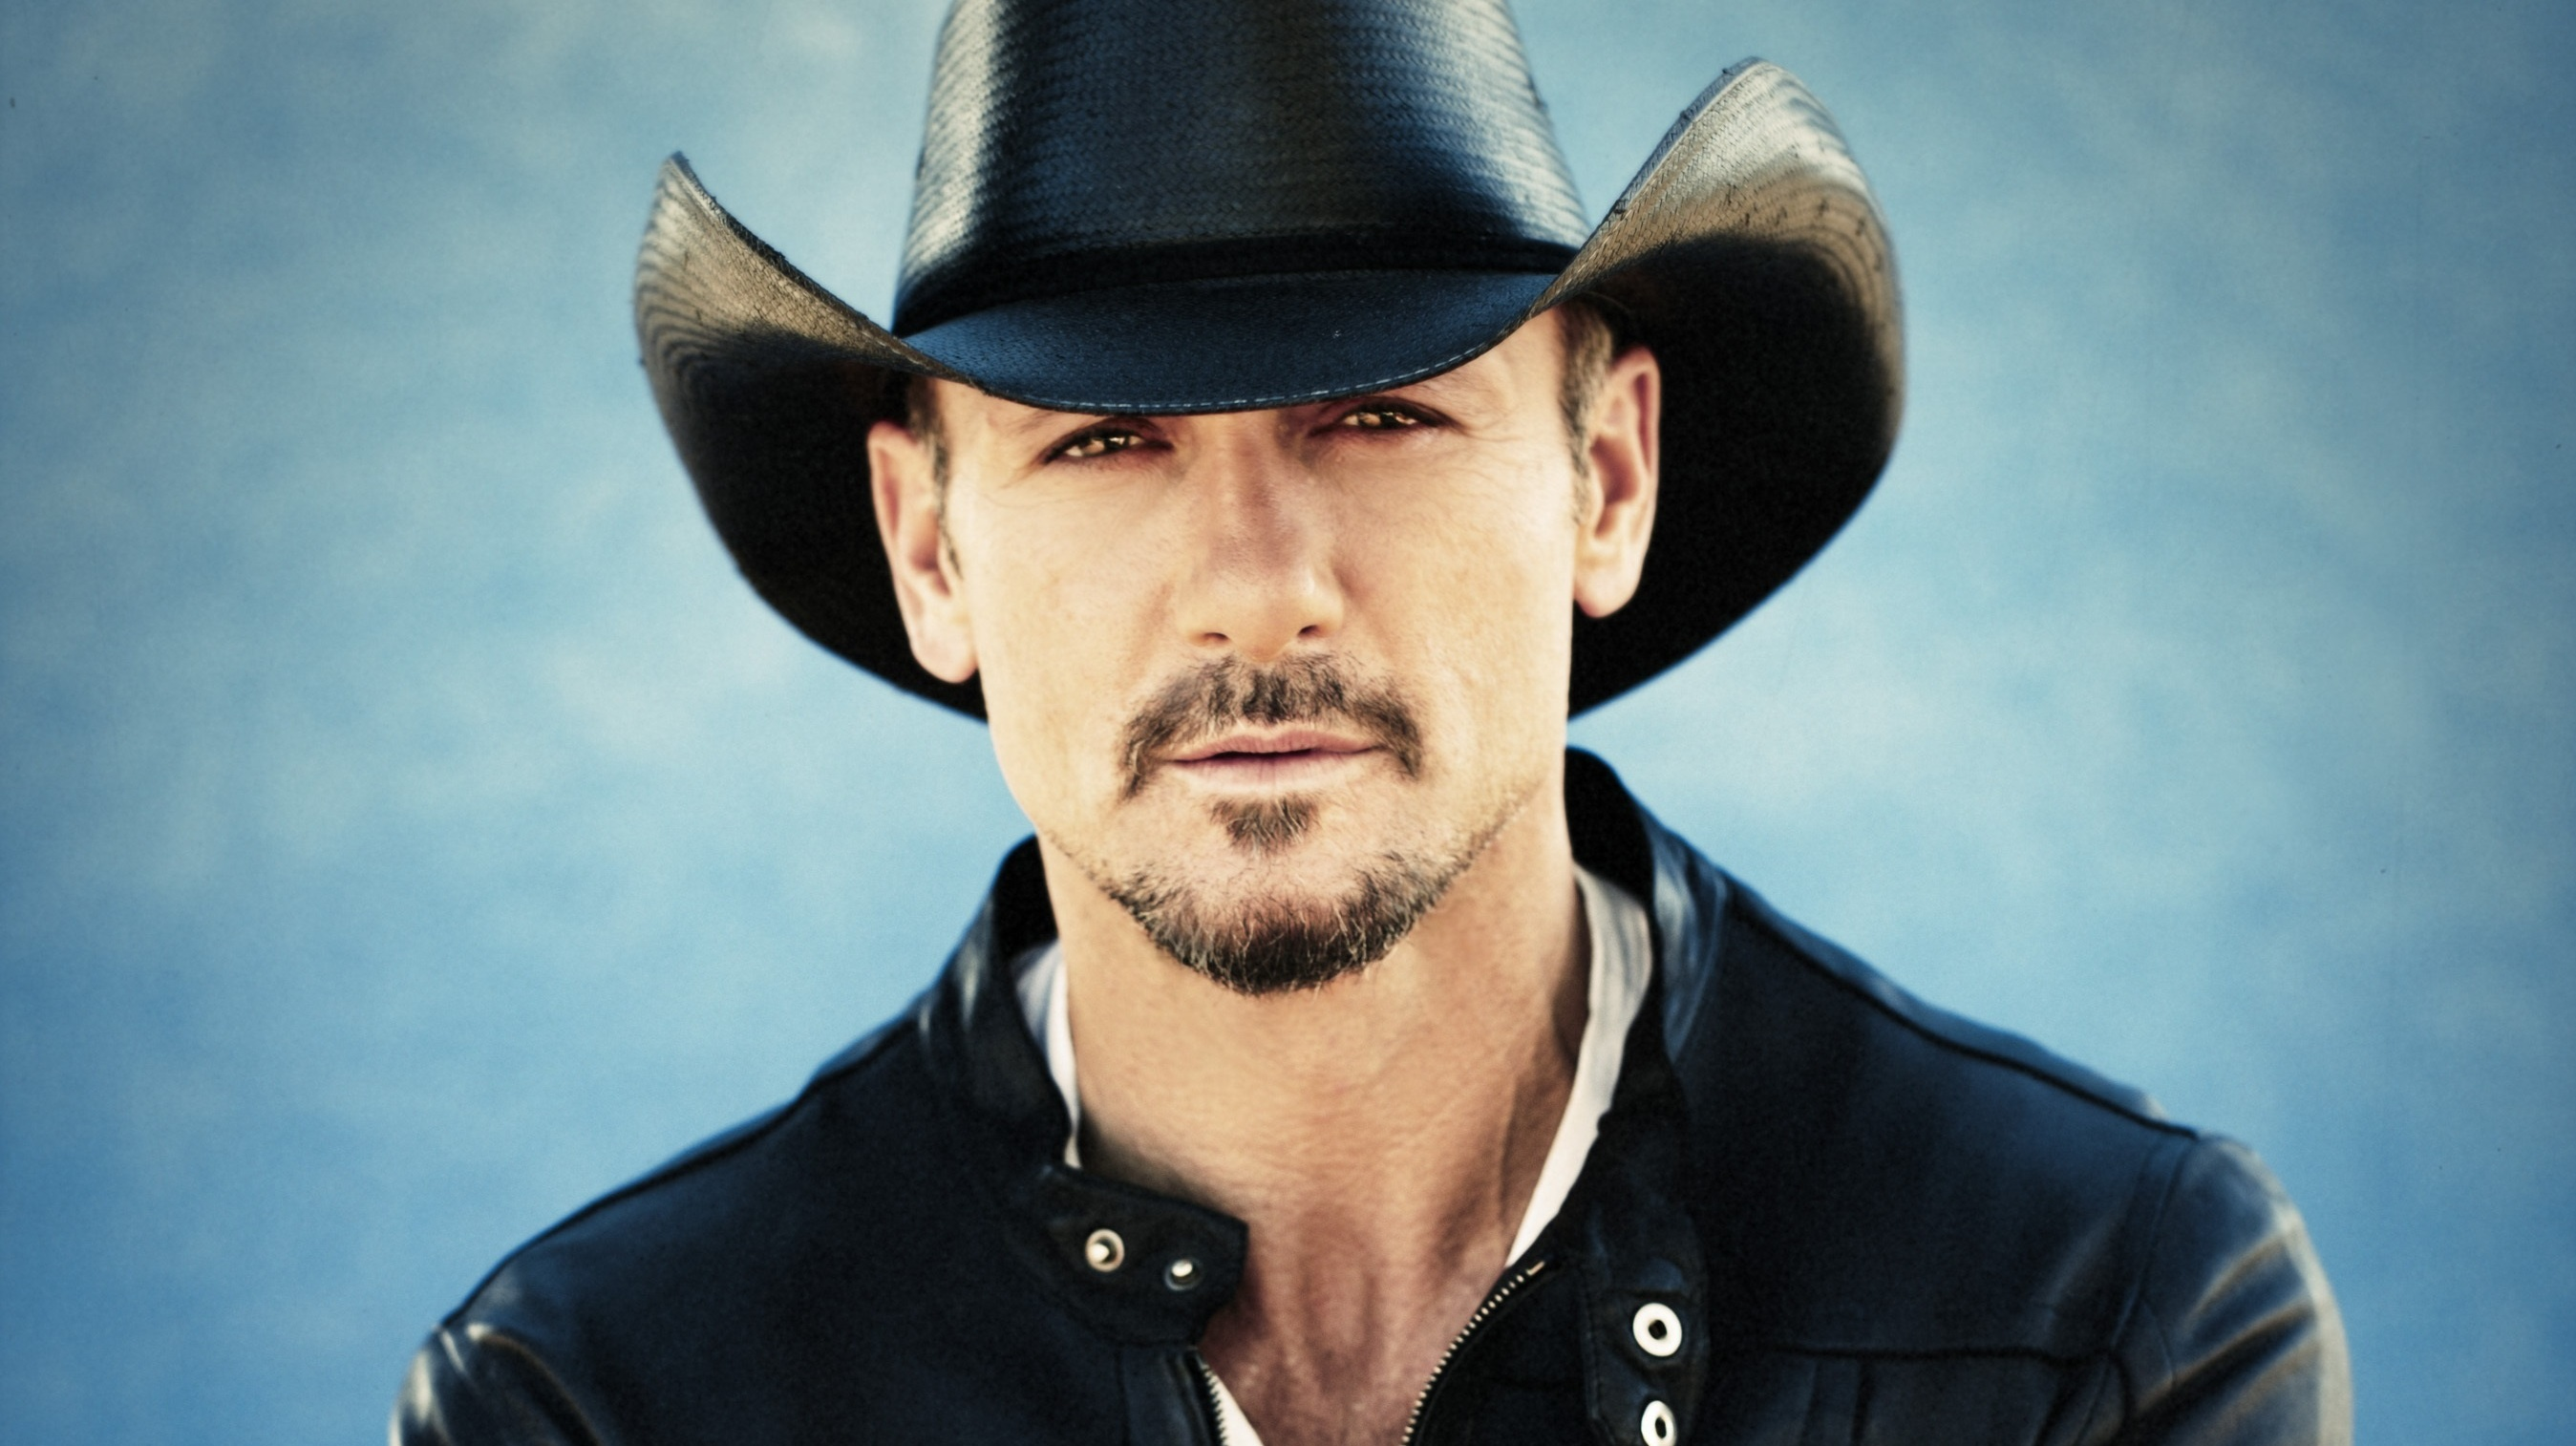 Tim McGraw: 'I'm Just Now Learning How To Be Good'